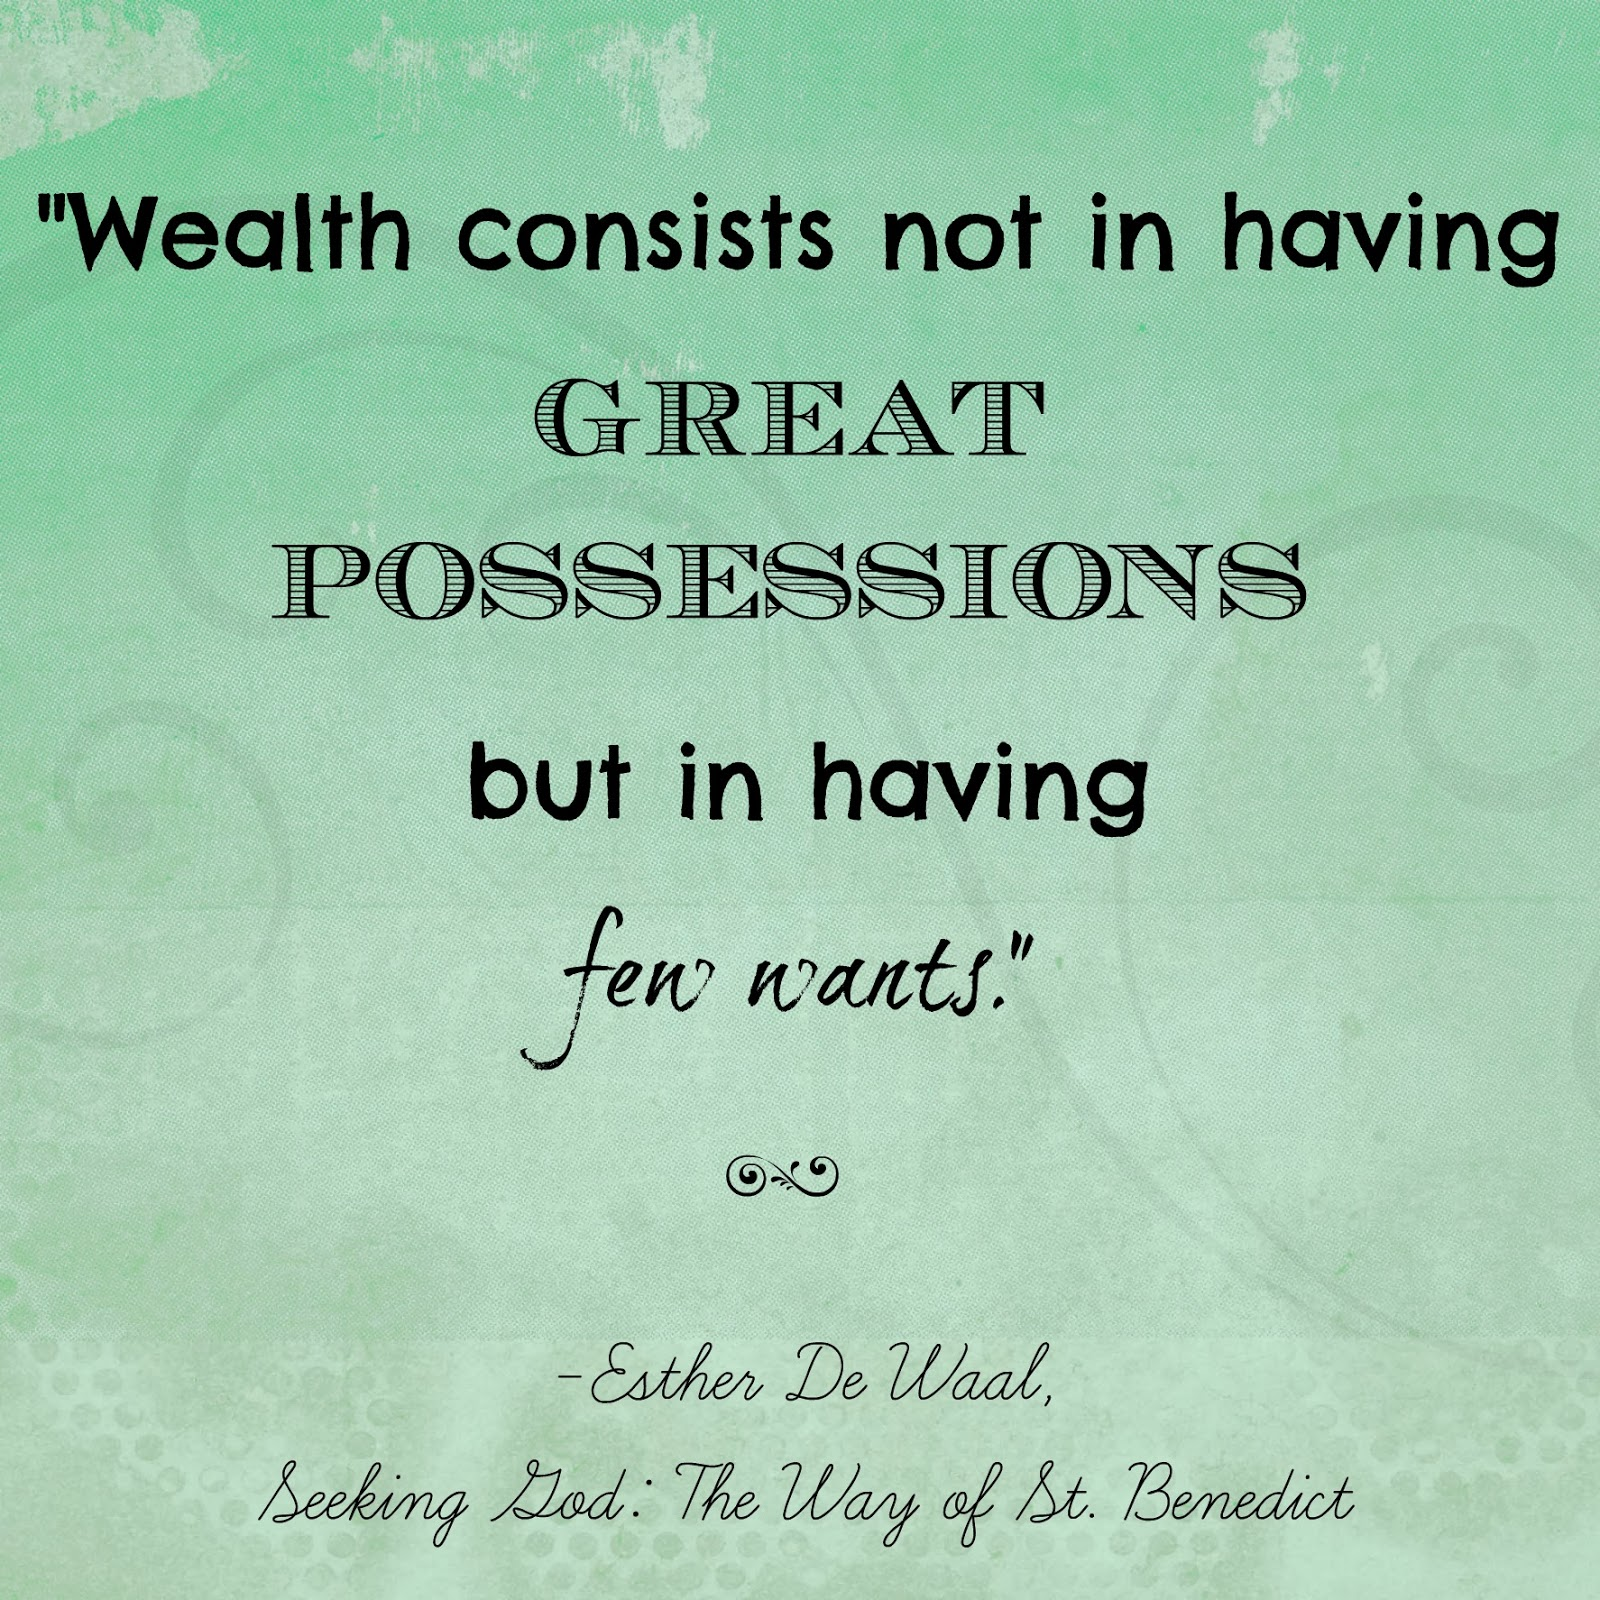 Wealth consists not in having great possessions but in having few wants - Life Lessons from SoHeresMyLife.com